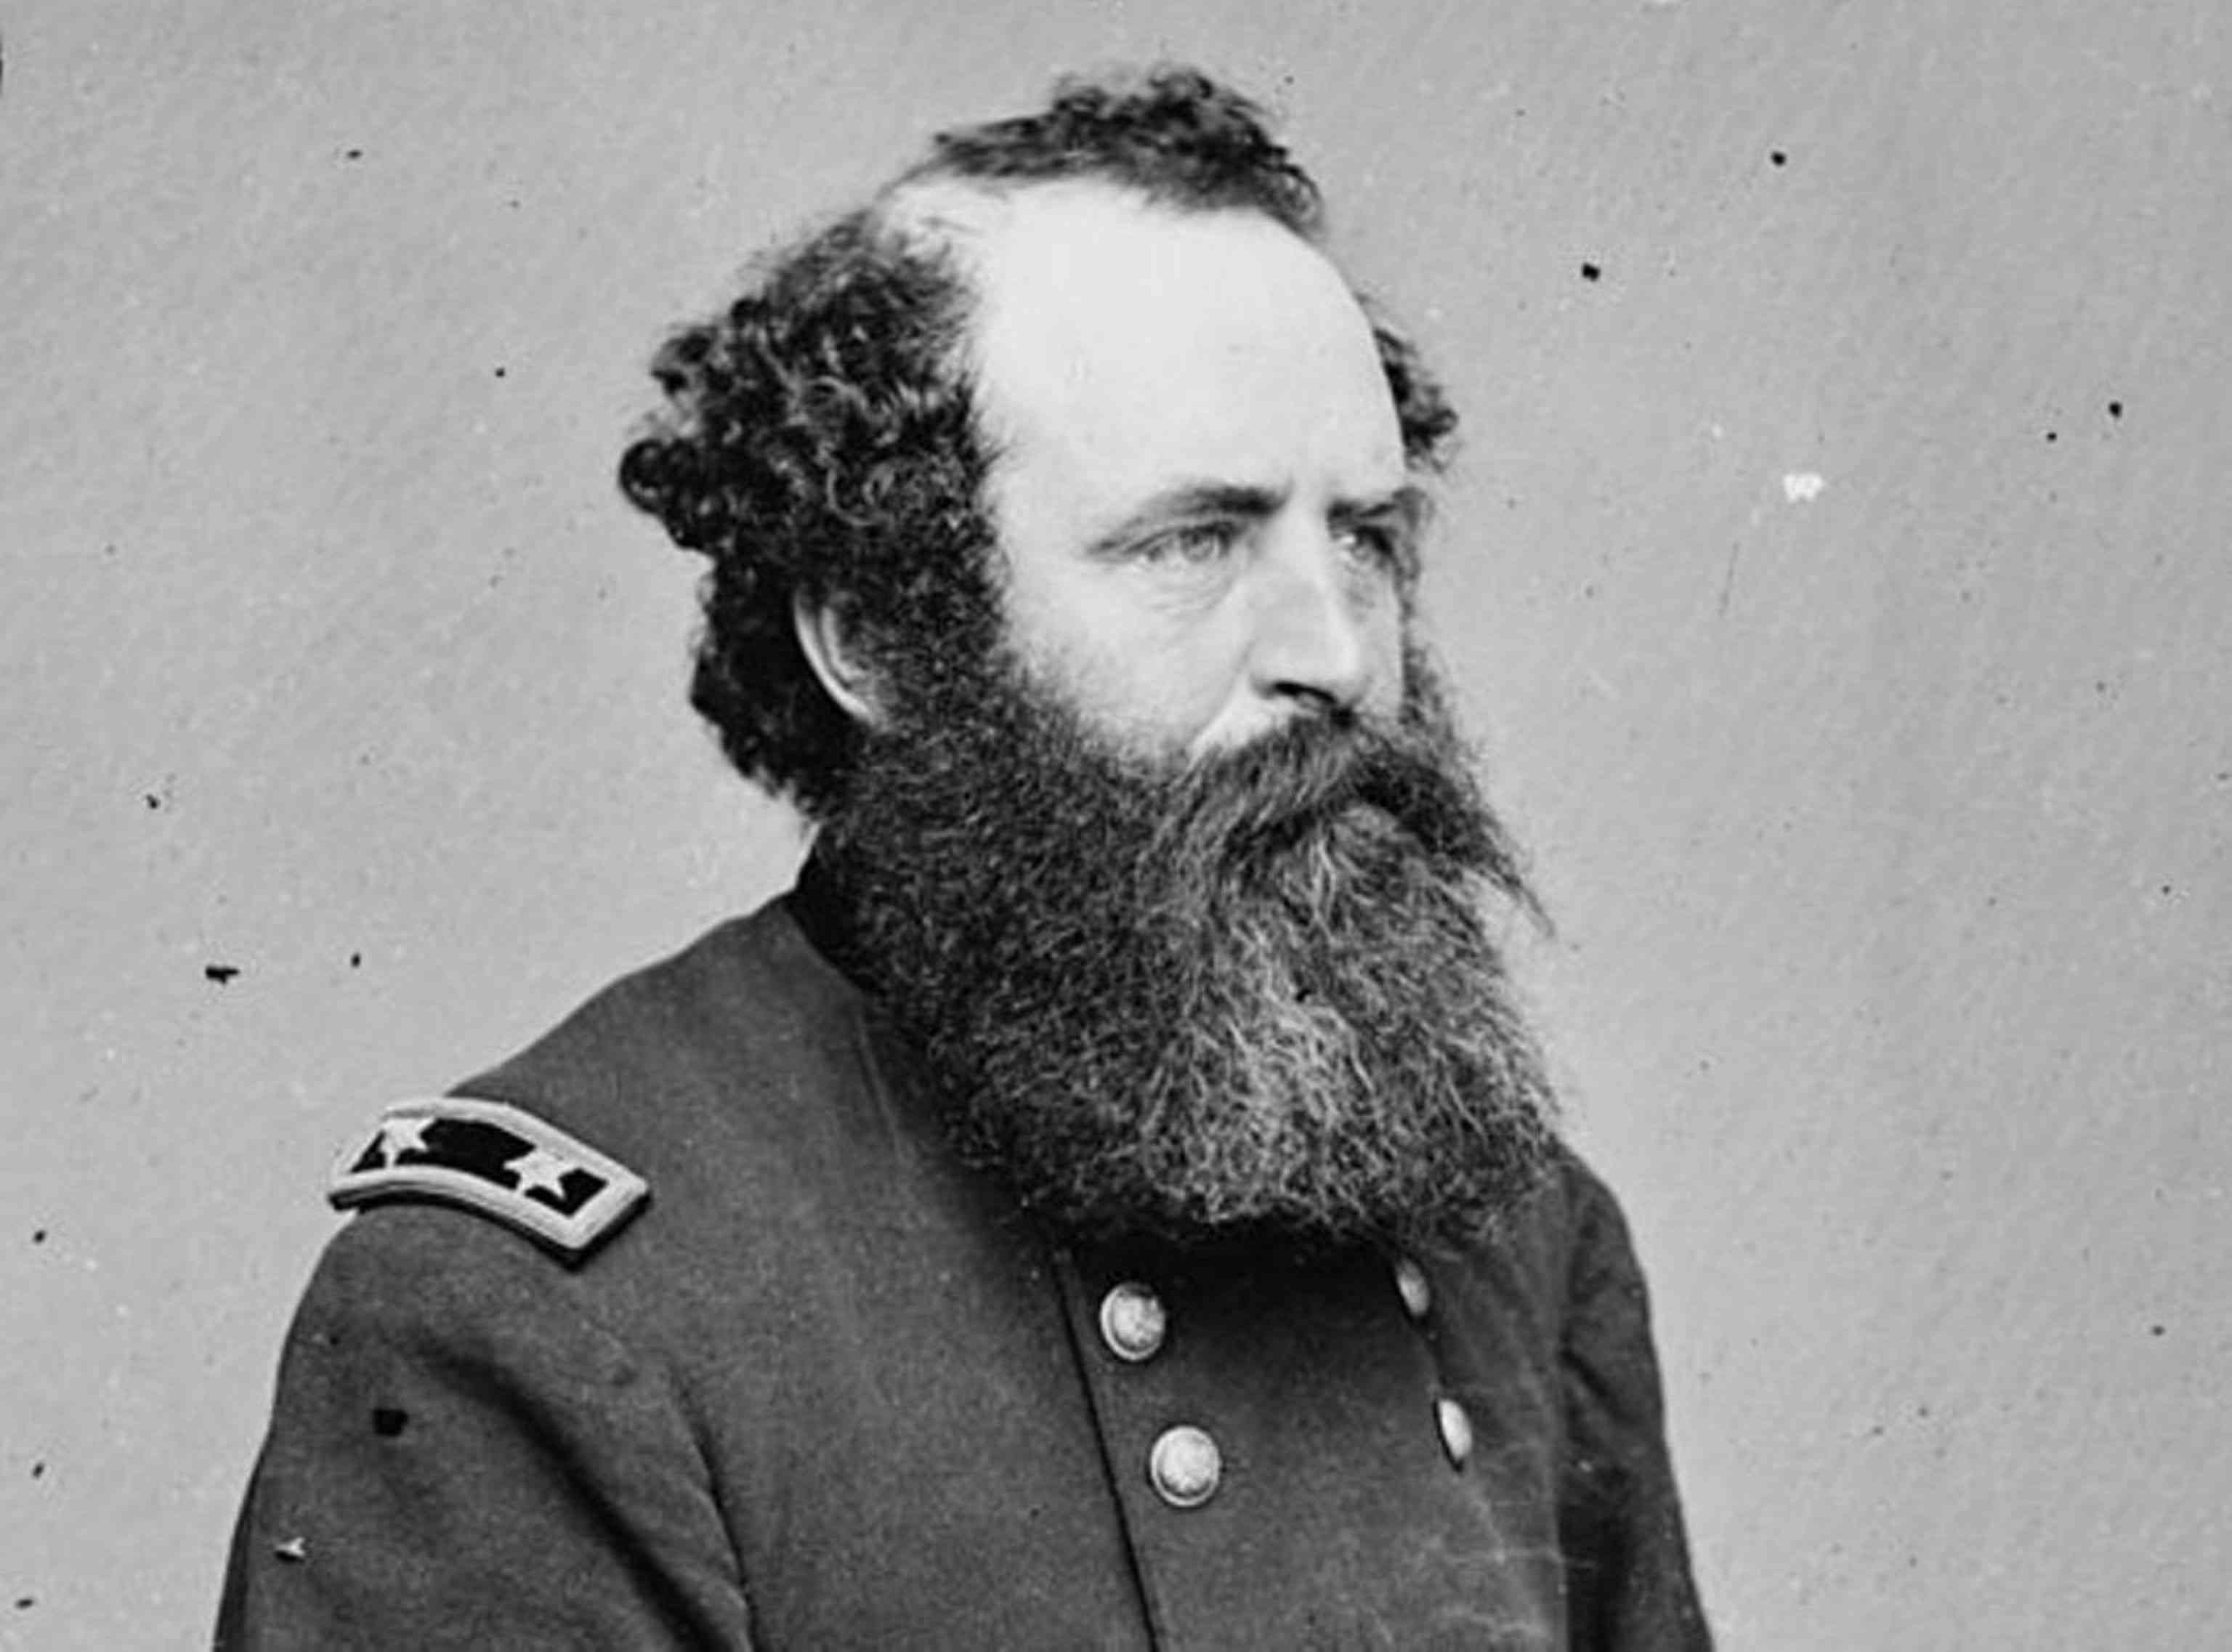 Major General Romeyn B. Ayres with a large beard and wearing his Union Army uniform.